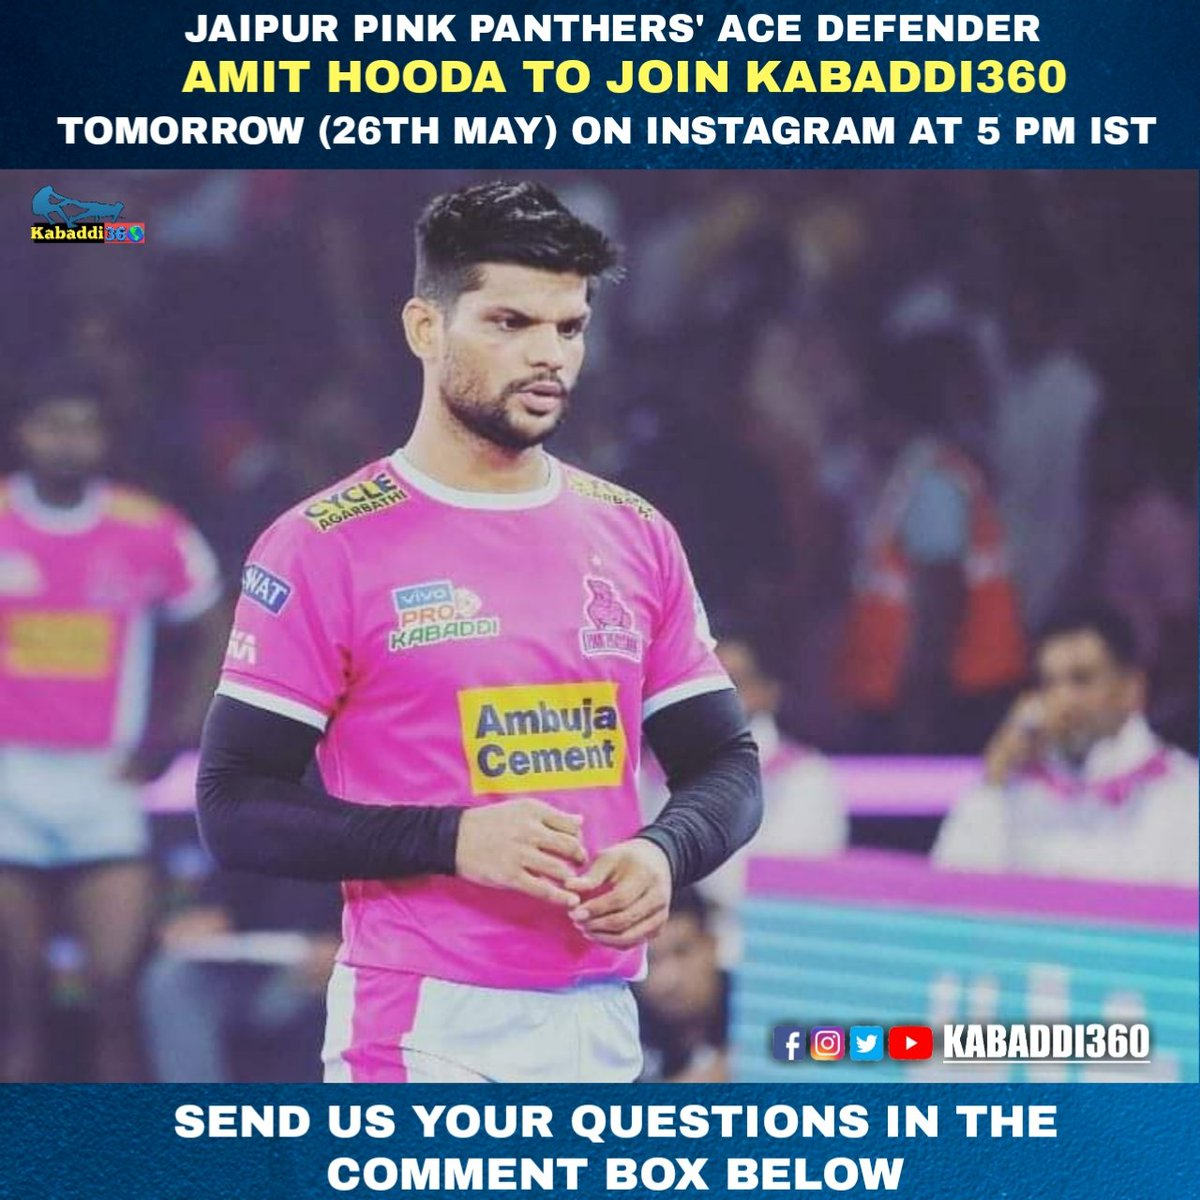 If you had to ask a question to Amit Hooda, what would you ask him? Join us LIVE tomorrow at 5 PM IST.   #Kabaddi360Live #Kabaddi360 #AmitHooda